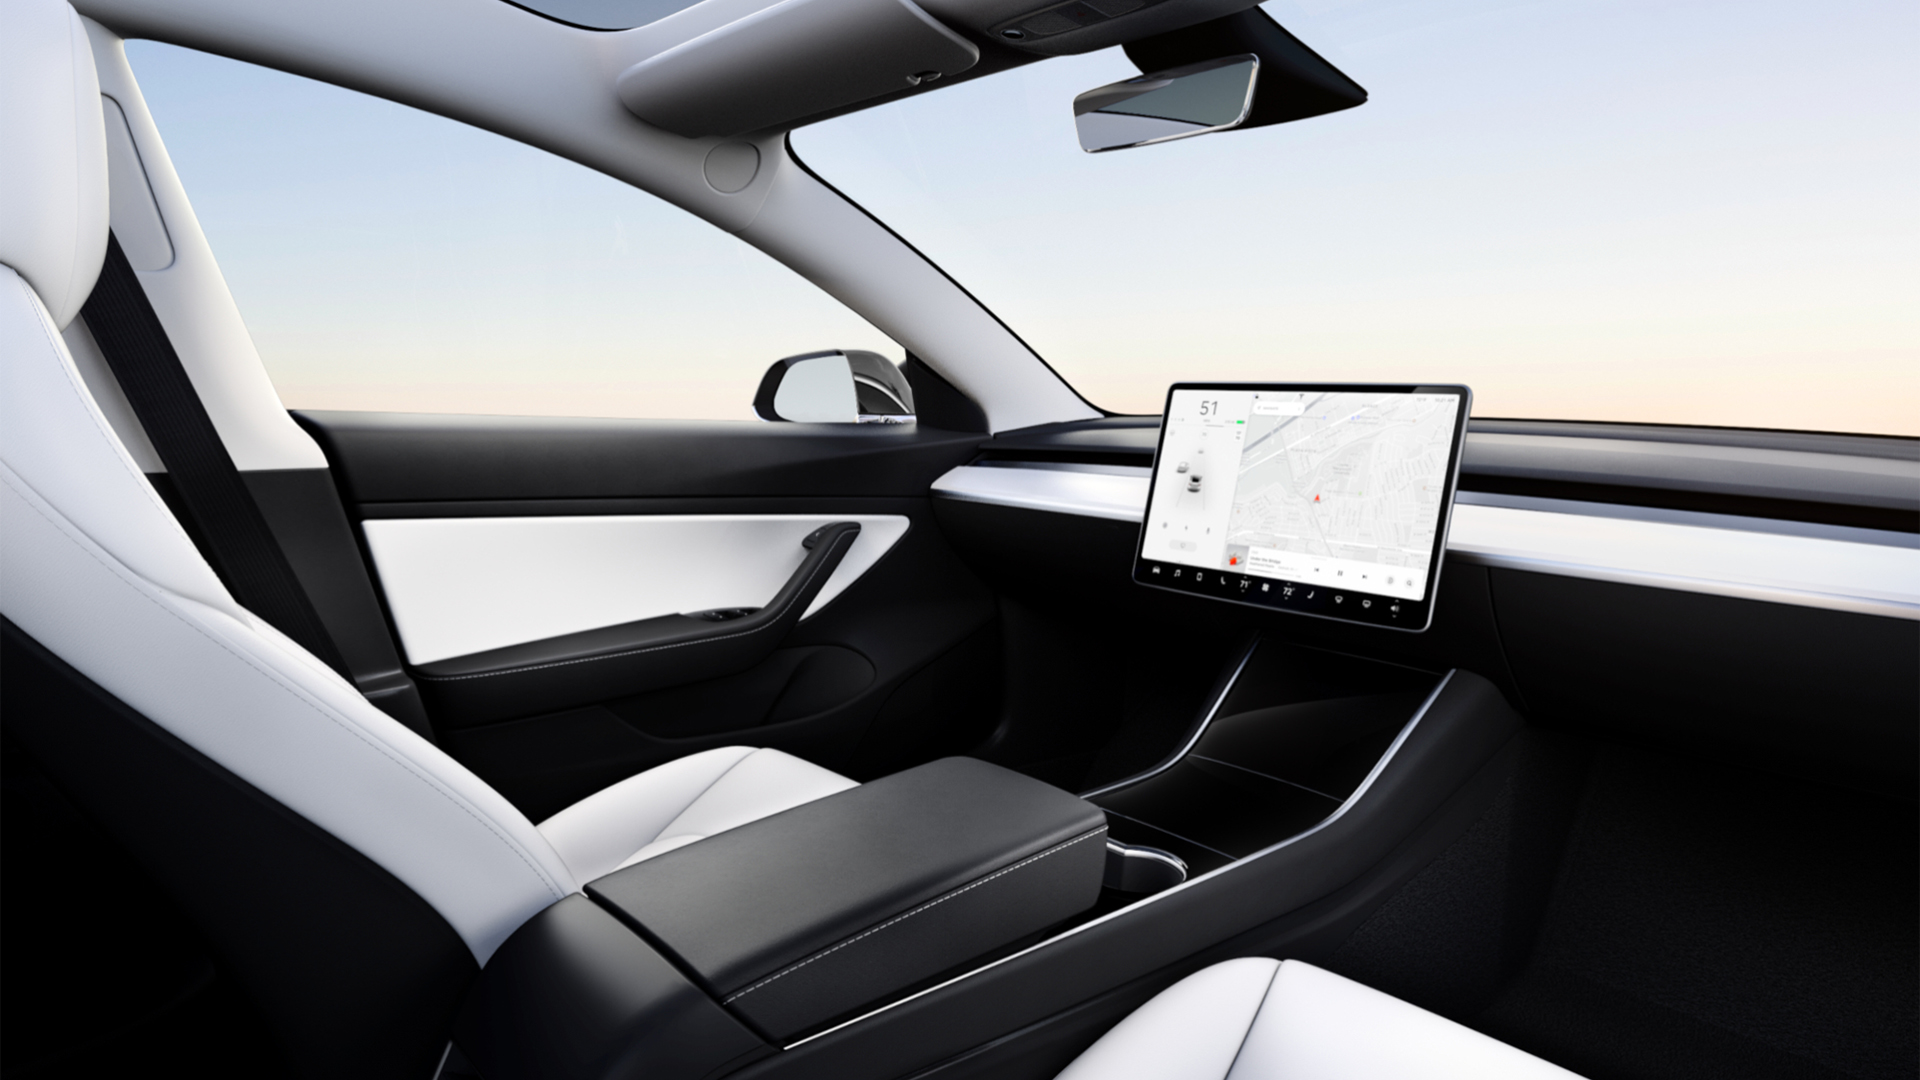 The Best High Tech Car Features of 2019